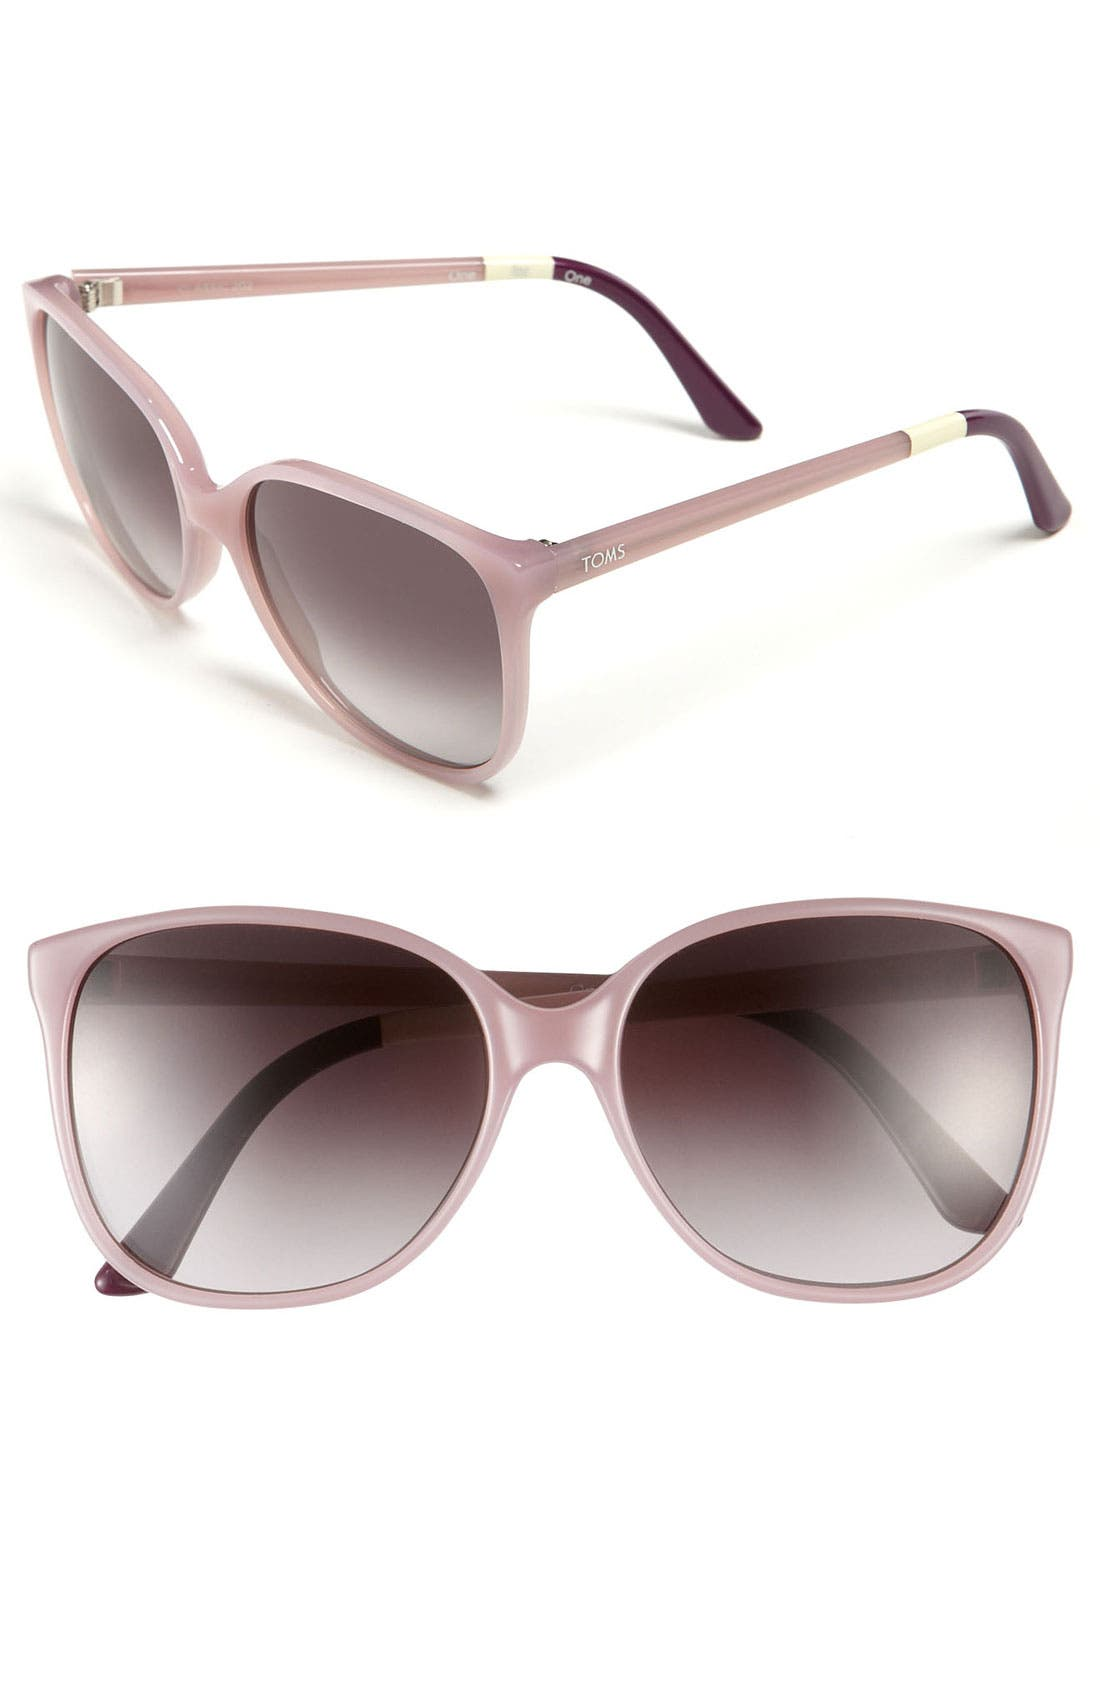 Main Image - TOMS 'Sandela' 57mm Sunglasses